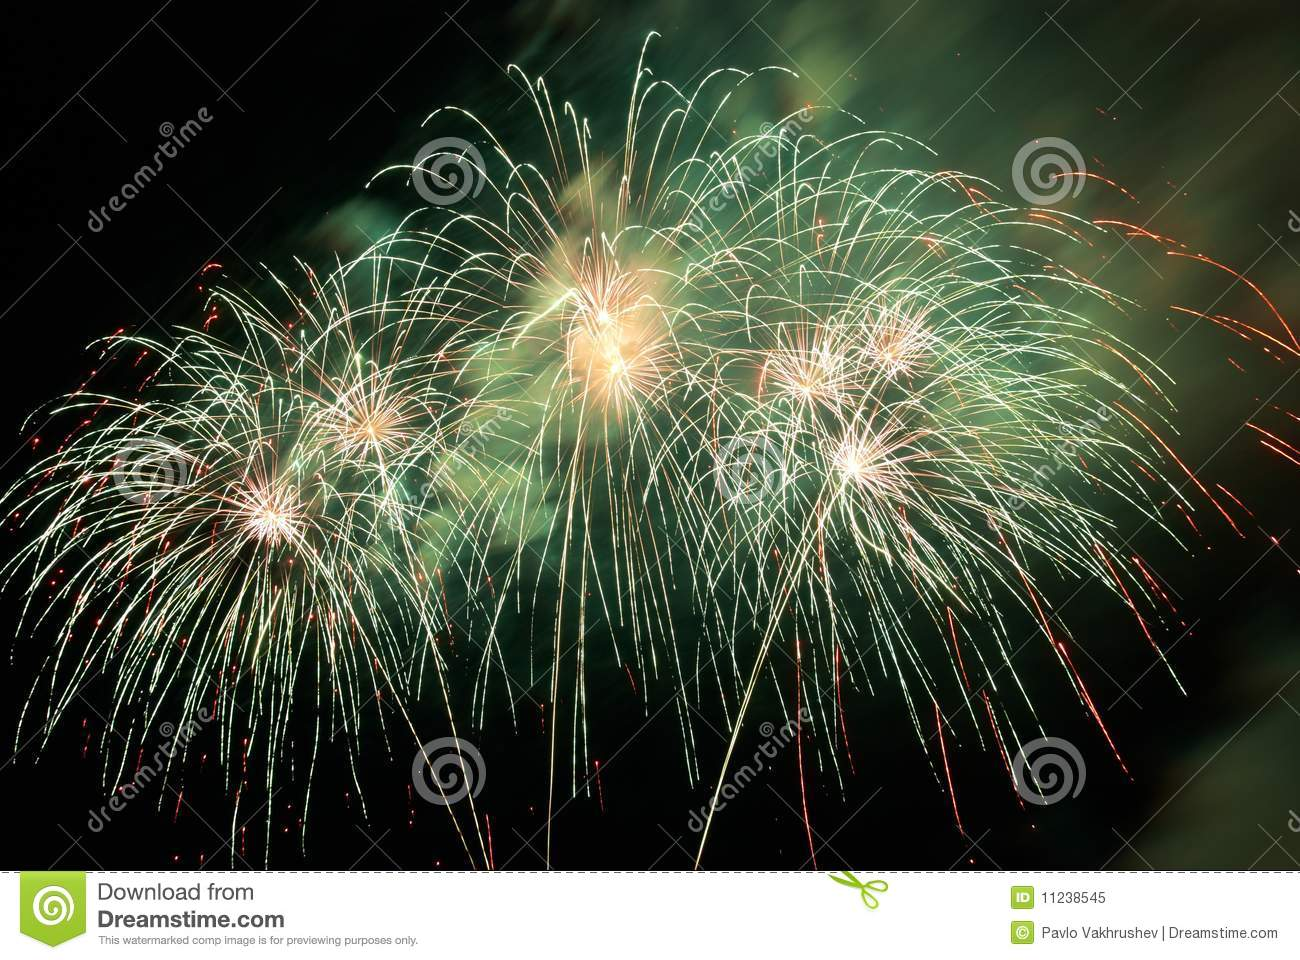 Wallpaper Salute Sky Holiday Colorful 3376x4220: Fireworks, Salute. Royalty Free Stock Photo